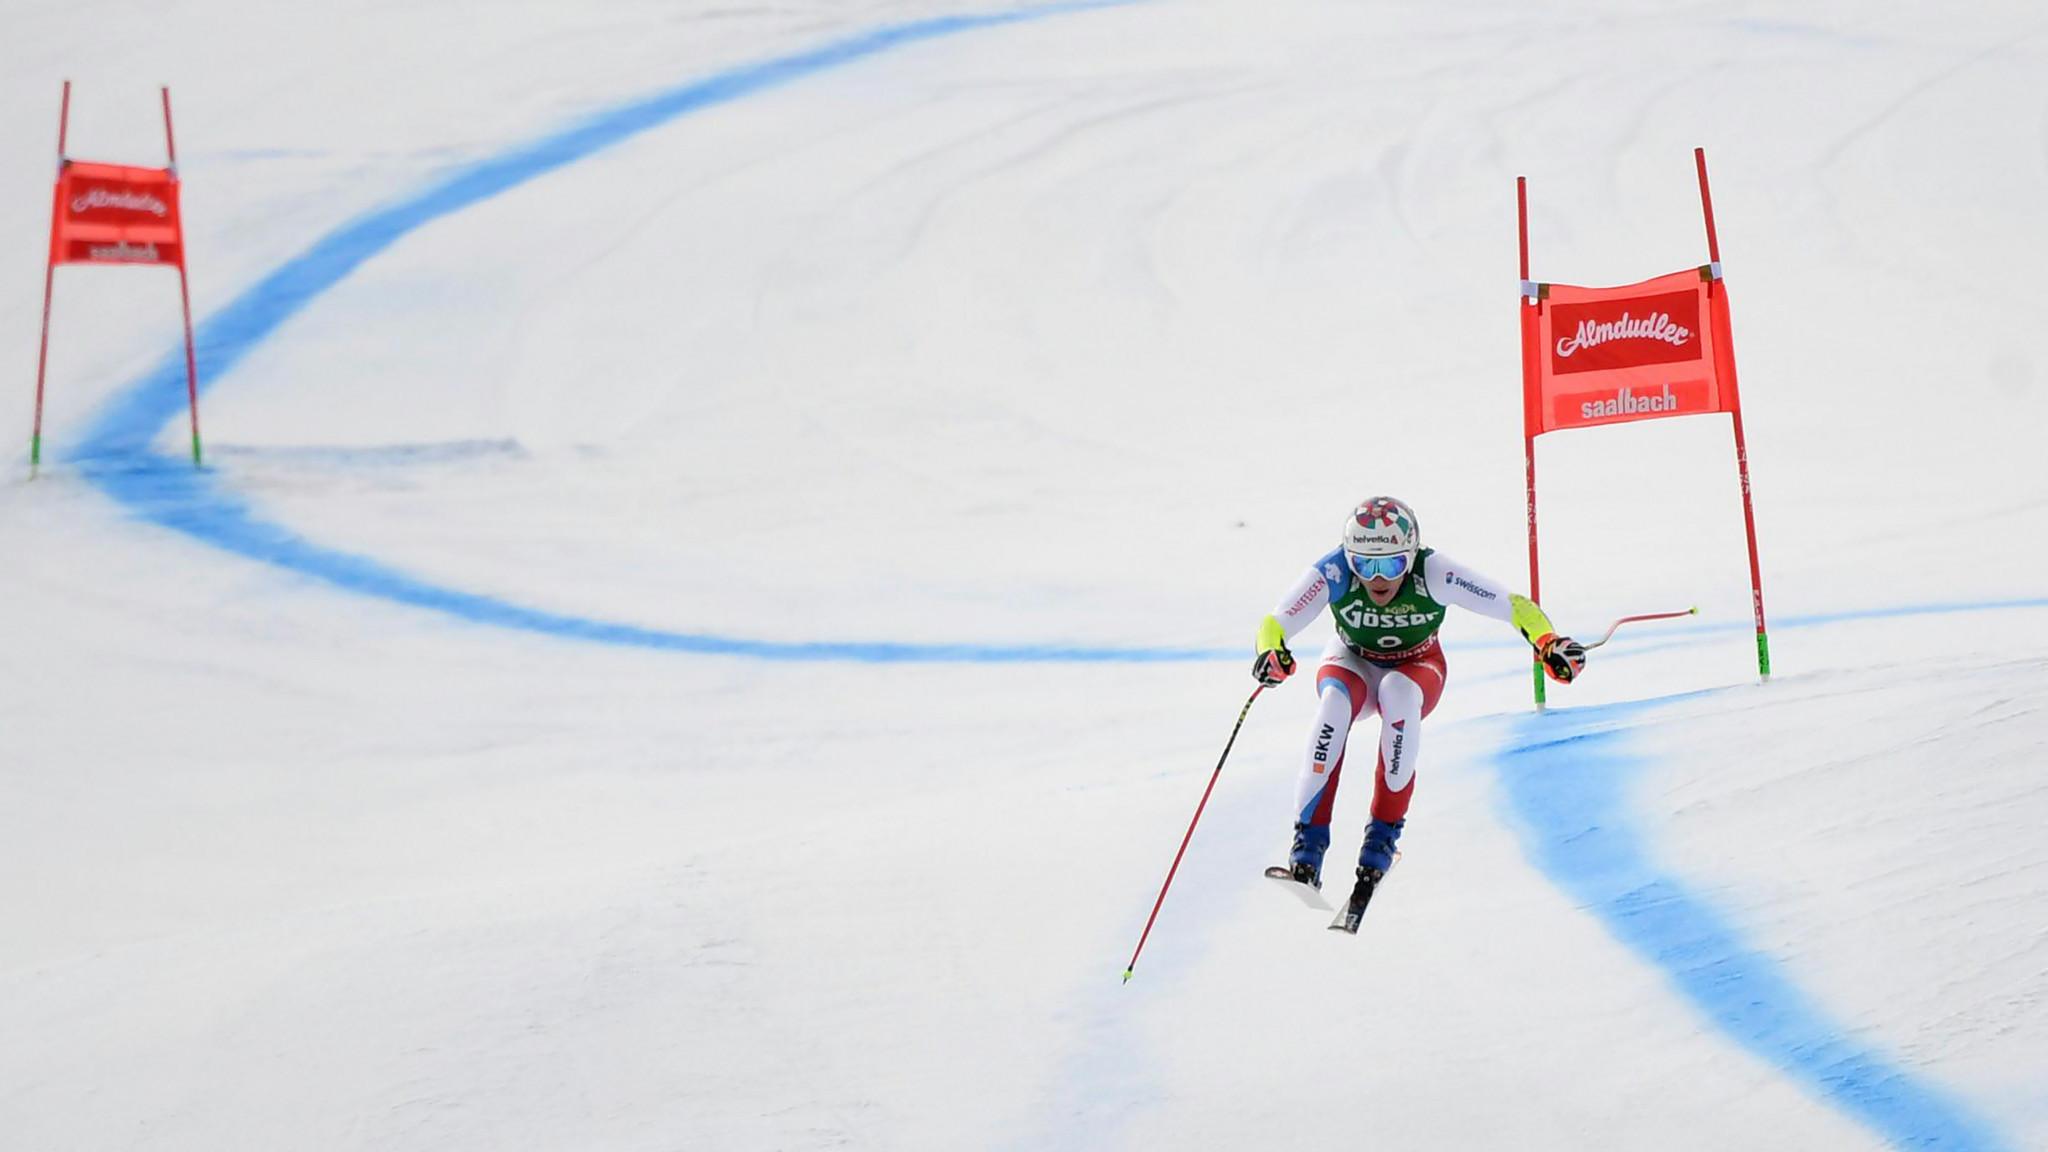 Marco Odermatt won the super-G event at the FIS Alpine Skiing World Cup in Saalbach ©Getty Images